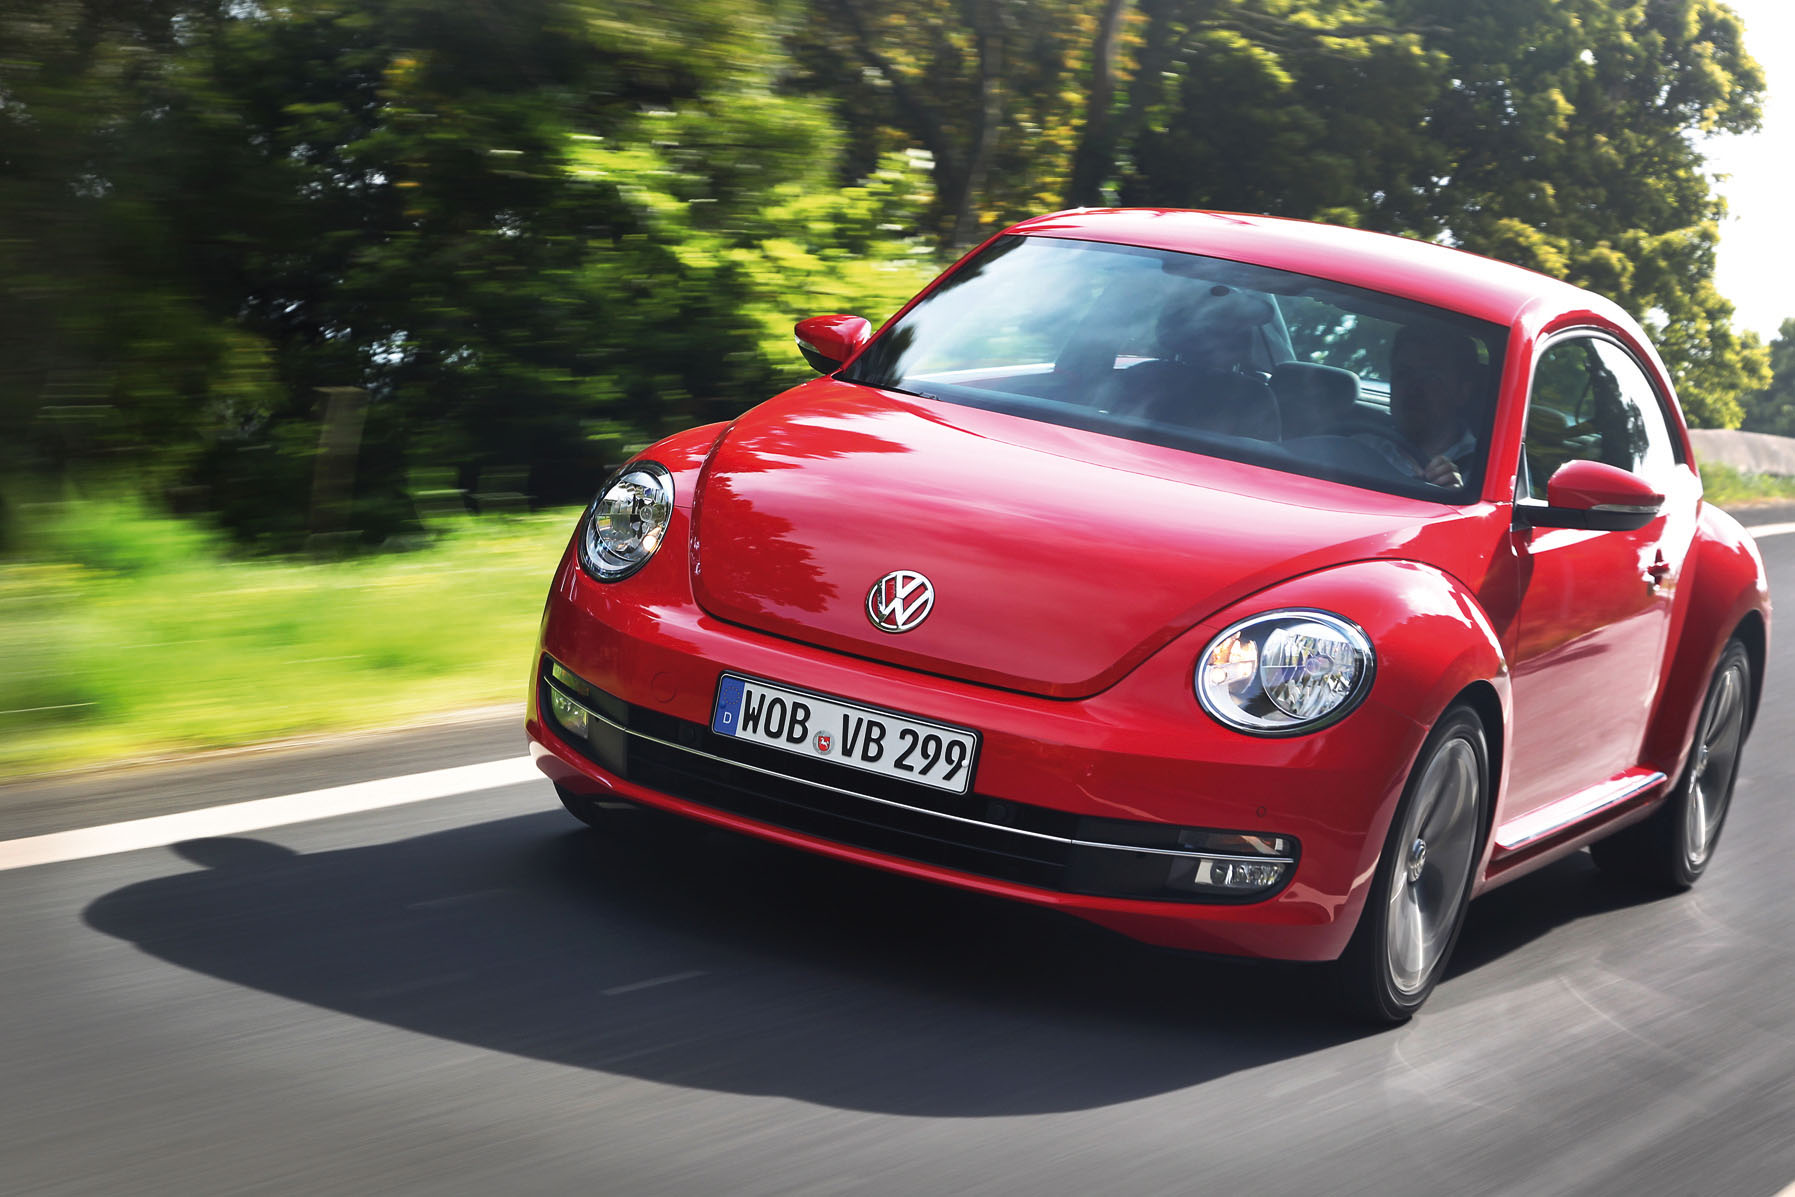 Volkswagen Beetle red #1